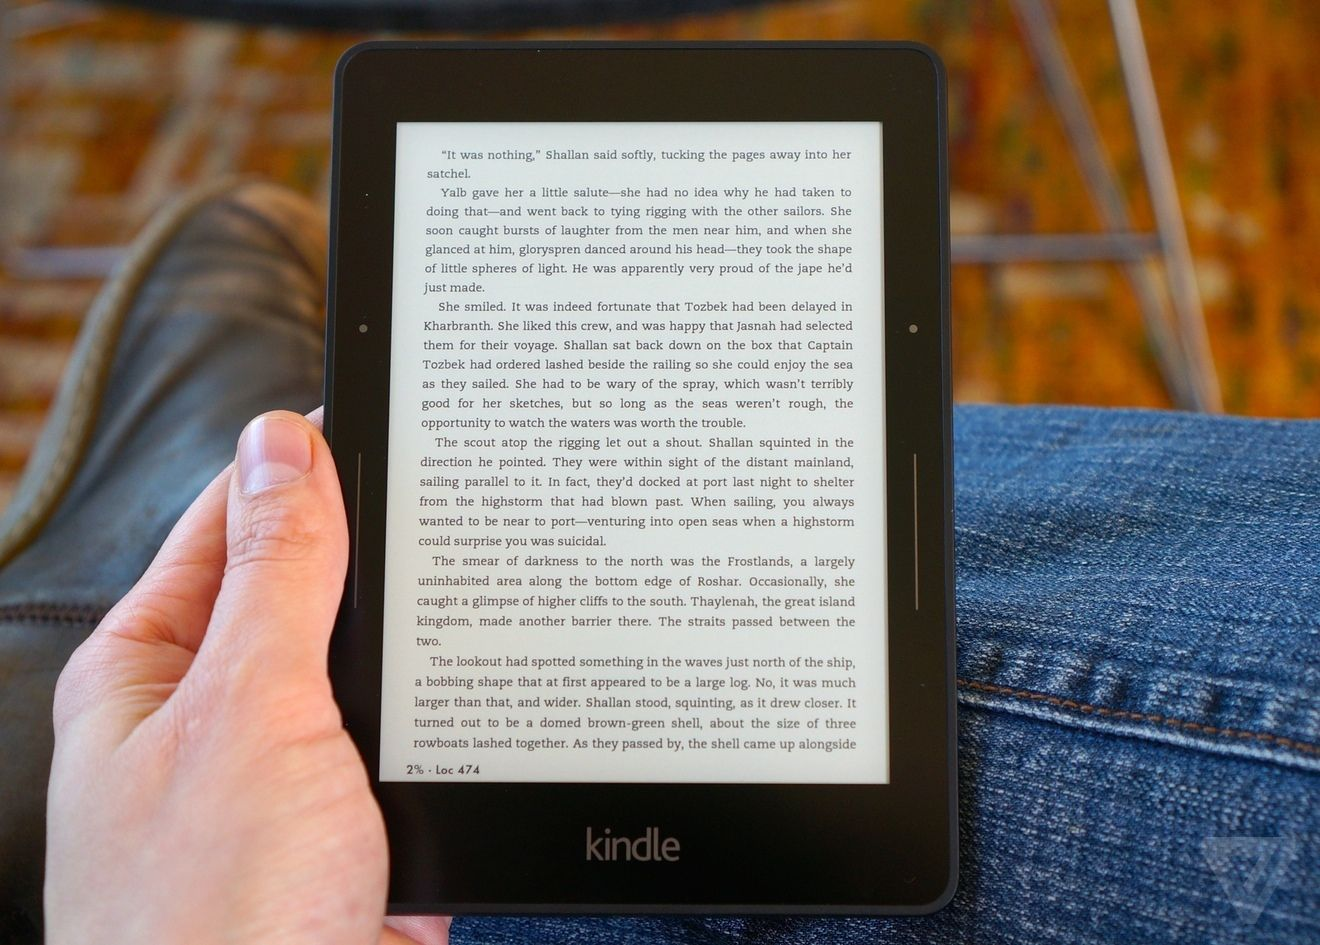 A Kindle software update